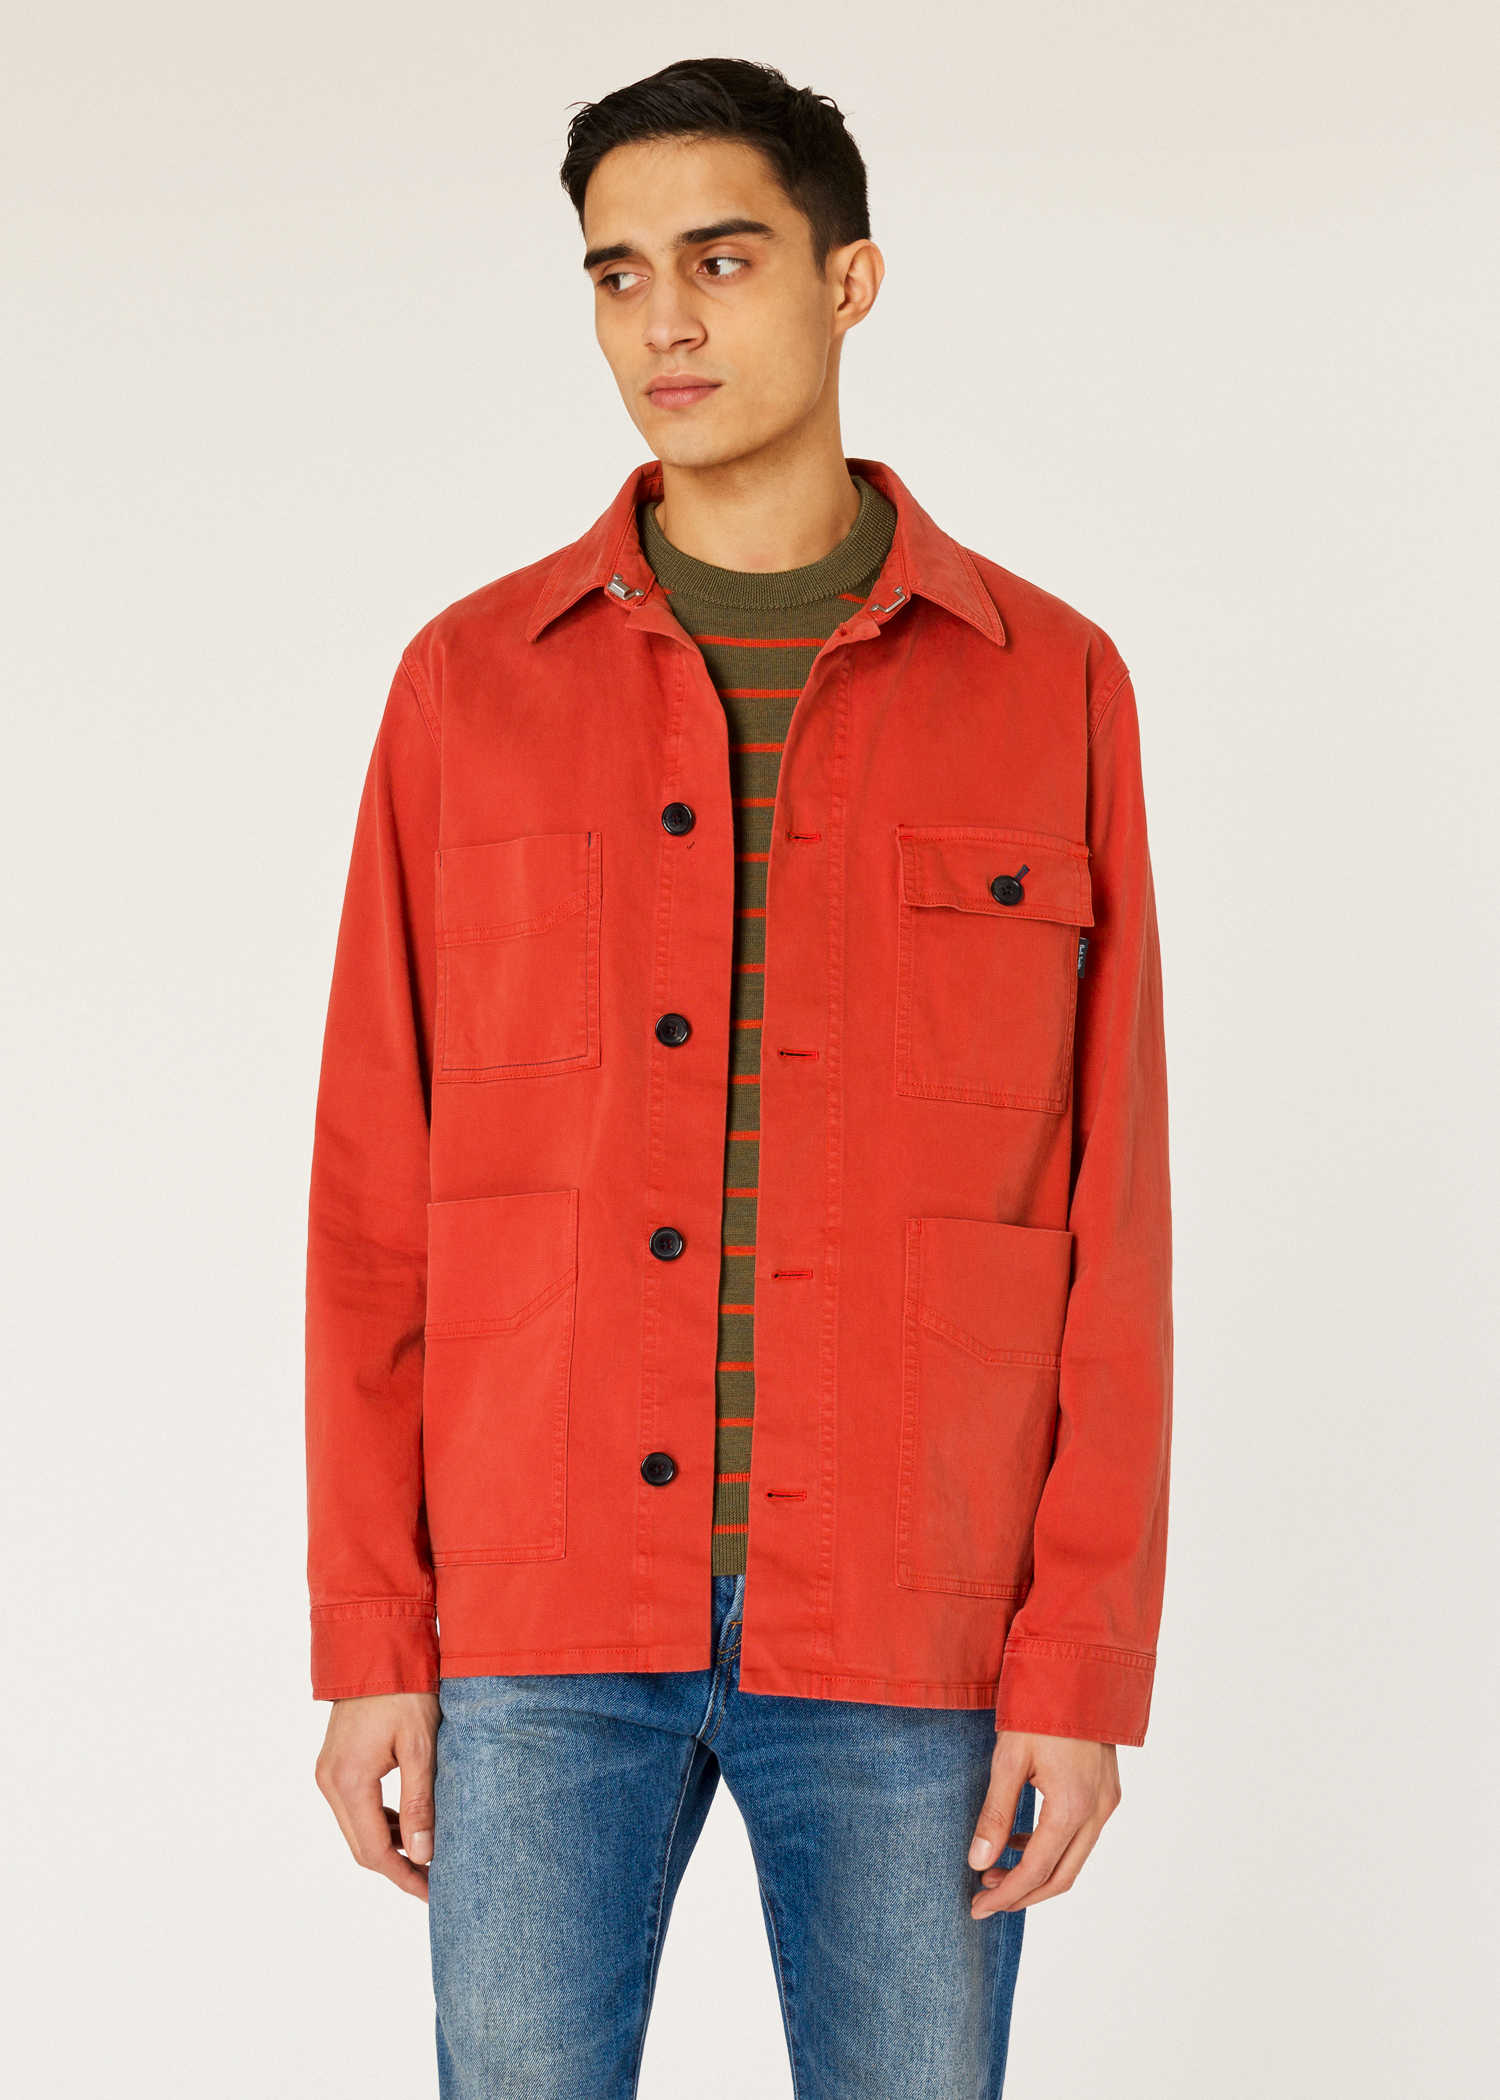 eaaa55dca Model front close up- Men's Orange Stretch Cotton-Twill Chore Jacket Paul  Smith